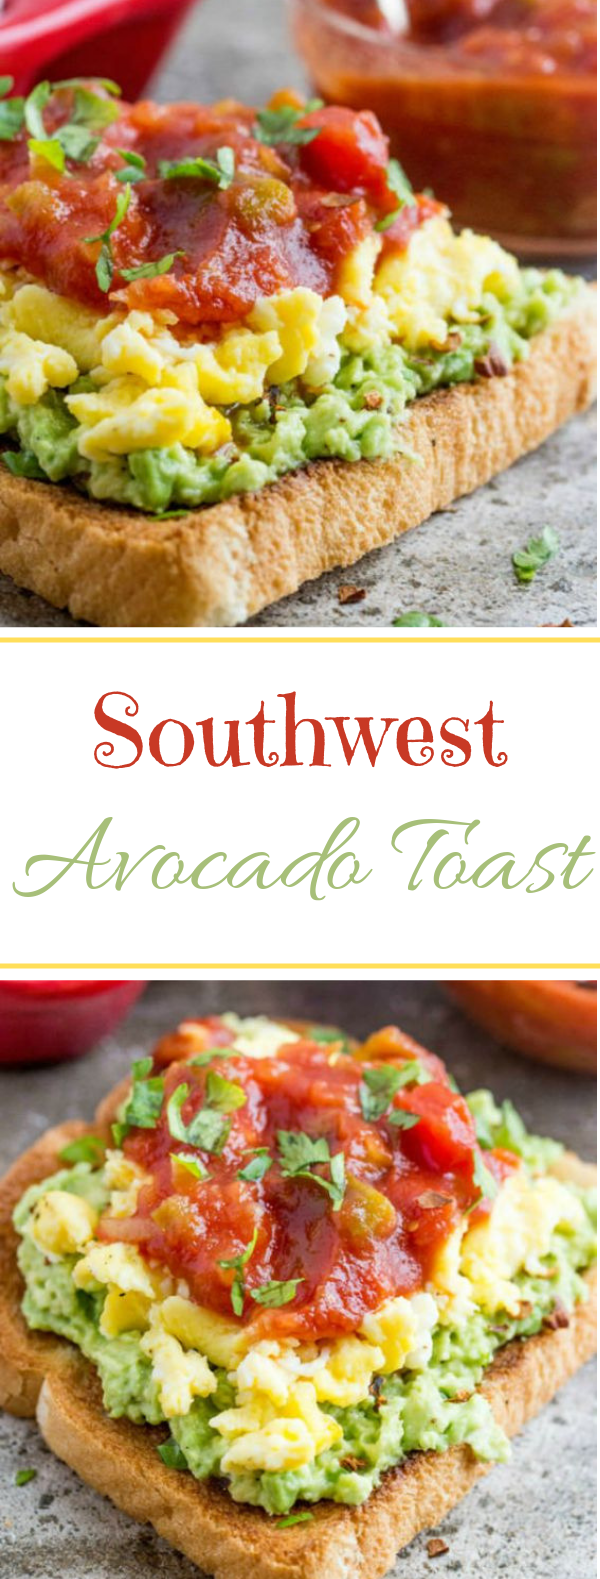 Southwest Avocado Toast #lunch #vegetarian